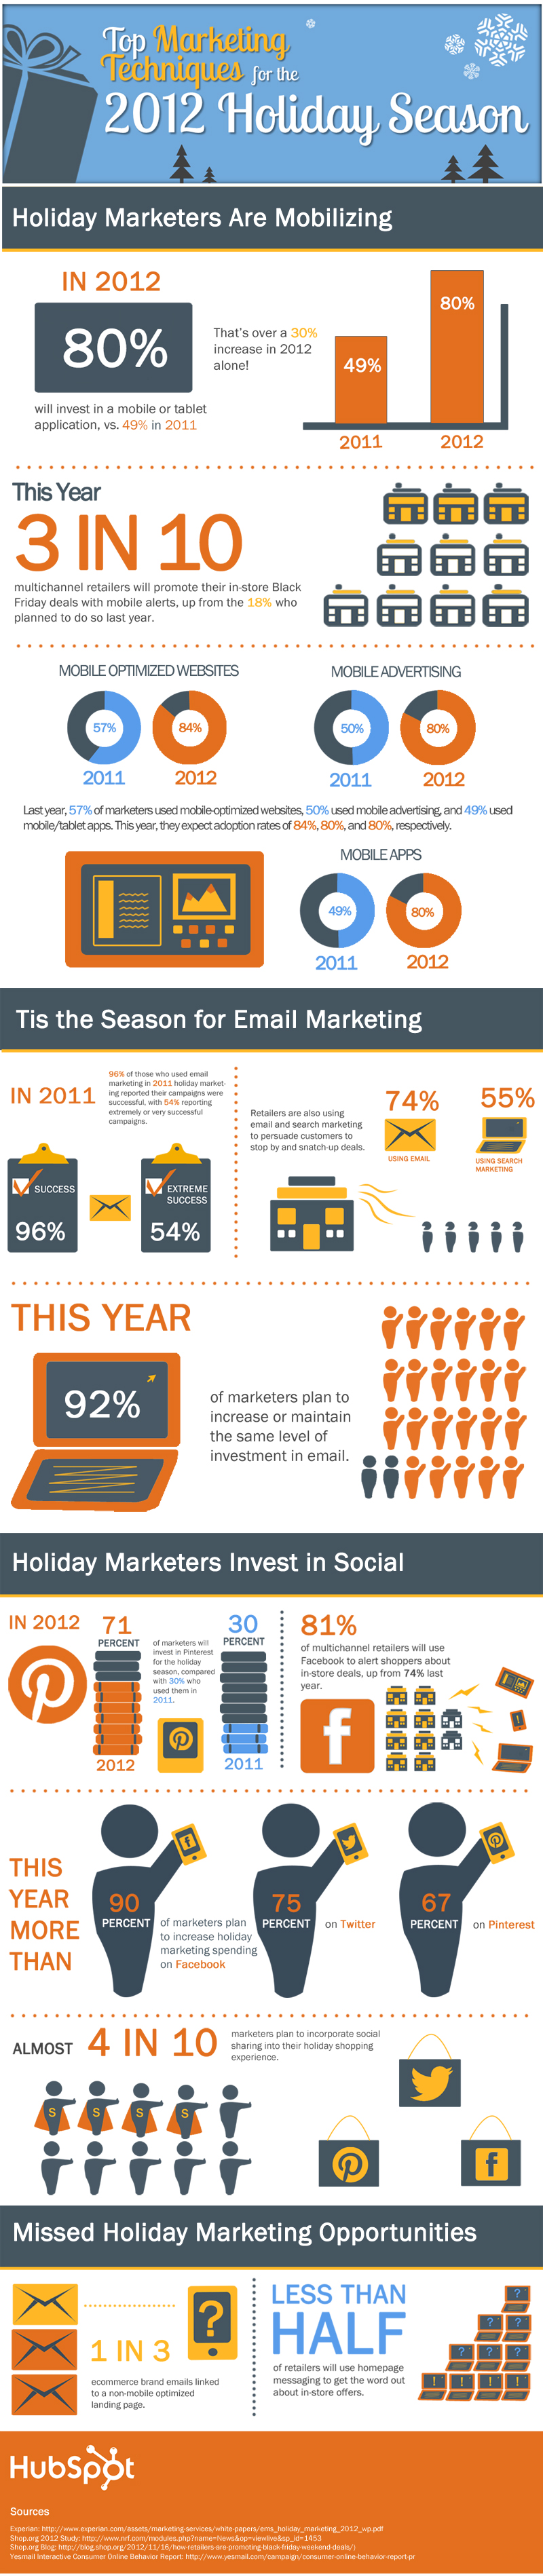 2012 Holiday Marketing Techniques